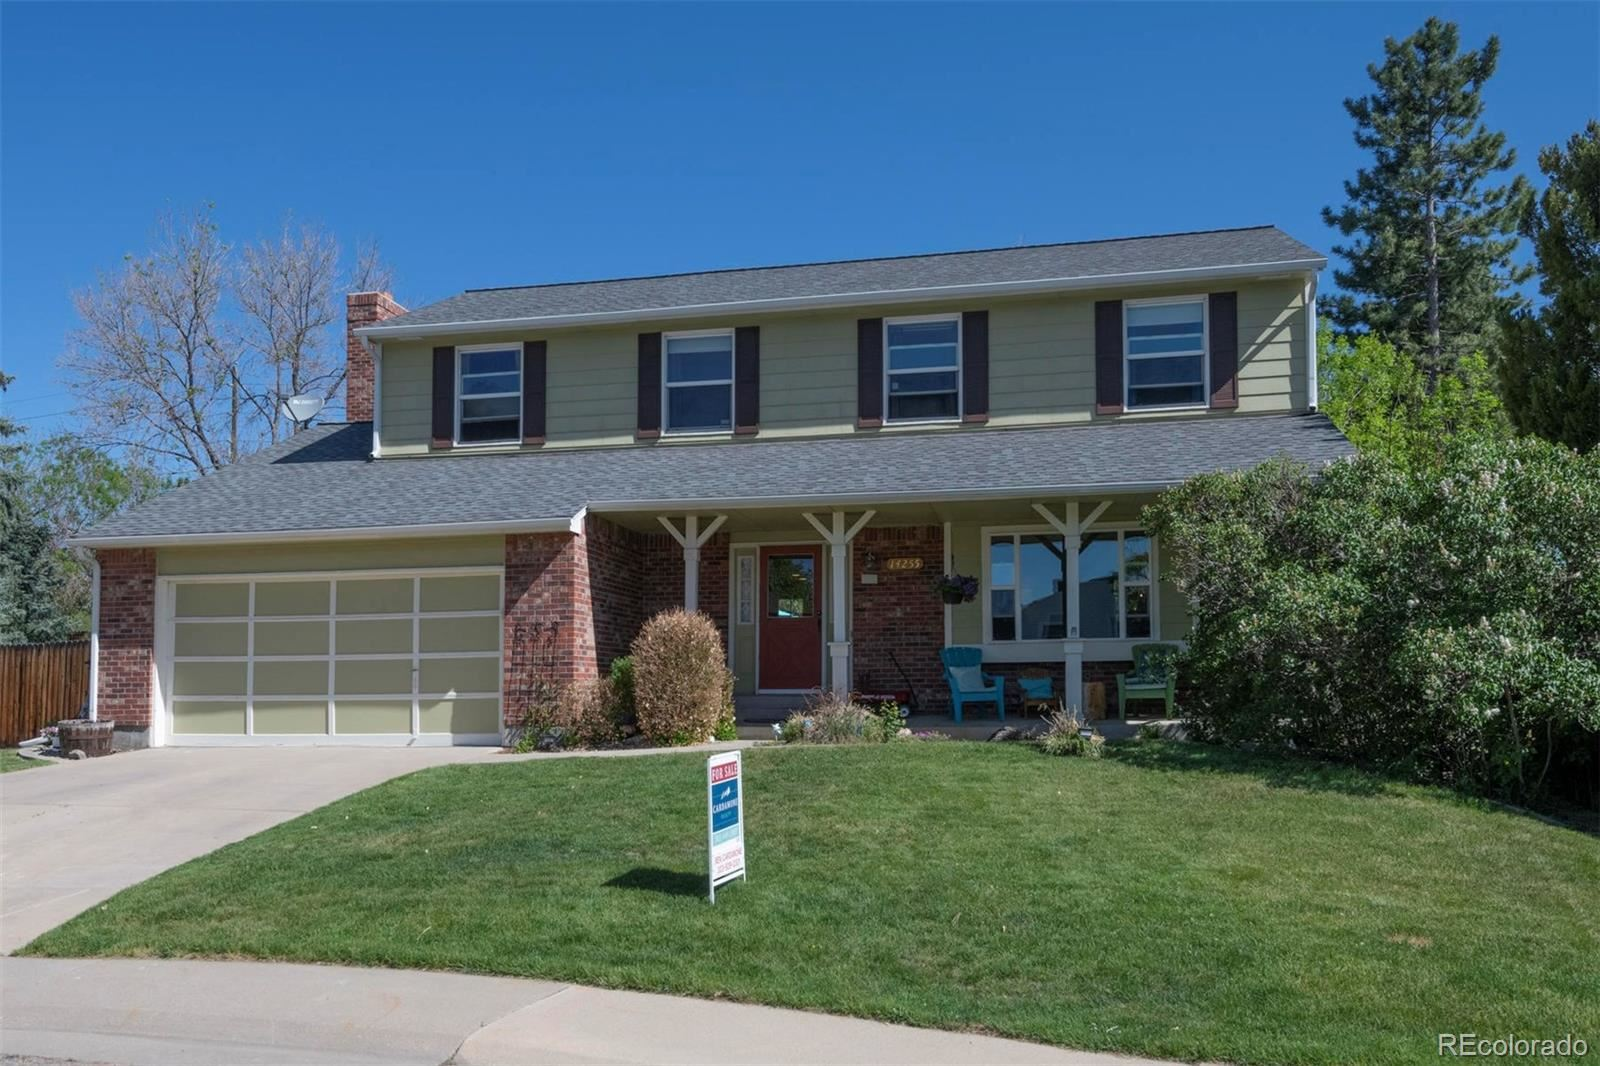 14255 W 71st Place, Arvada, CO 80004 - #: 4480360